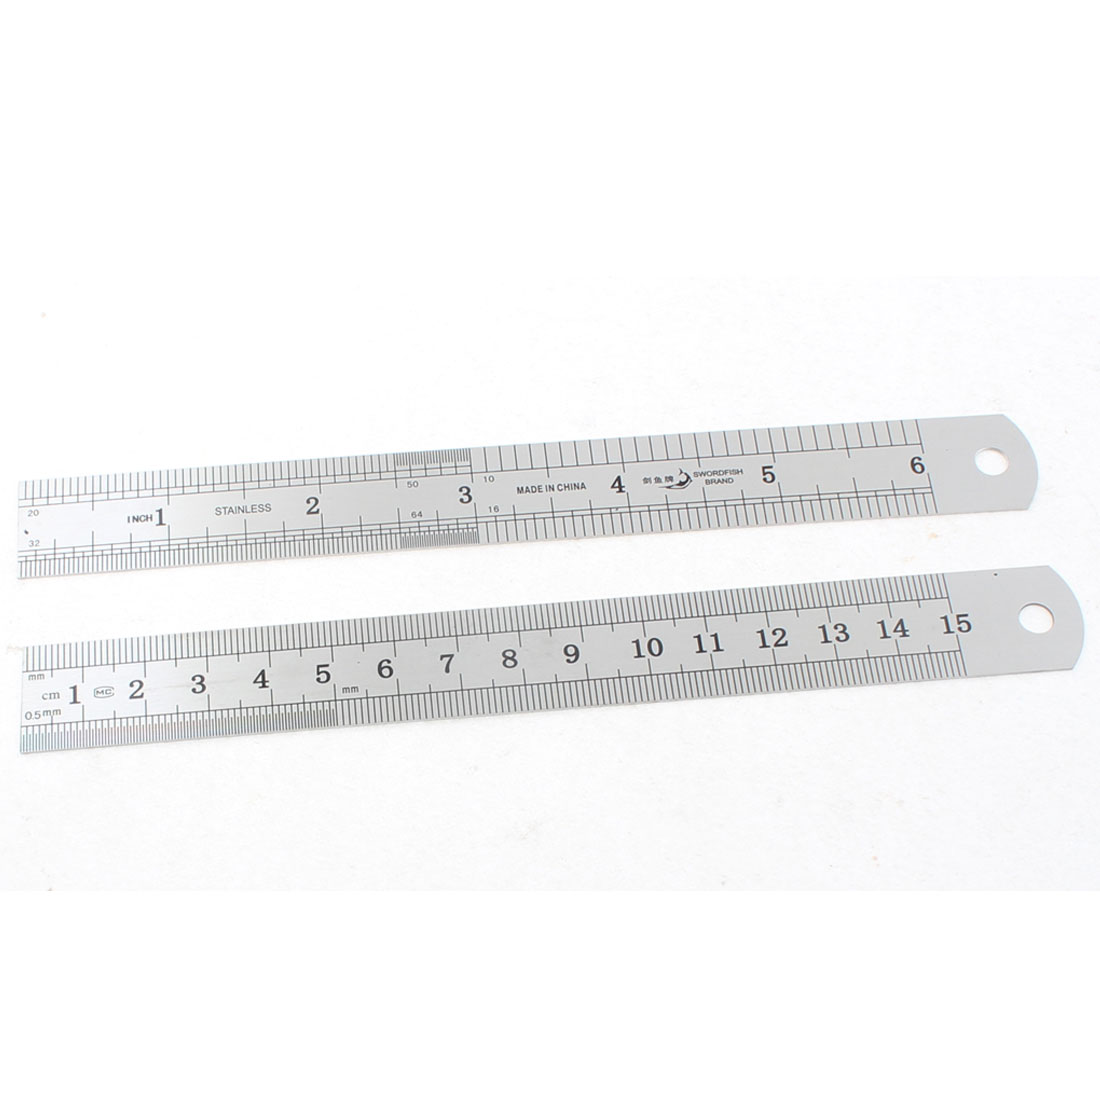 Dual Side Stainless Steel Straight Edge Ruler Measuring Tool 15cm 6 Inch 2pcs